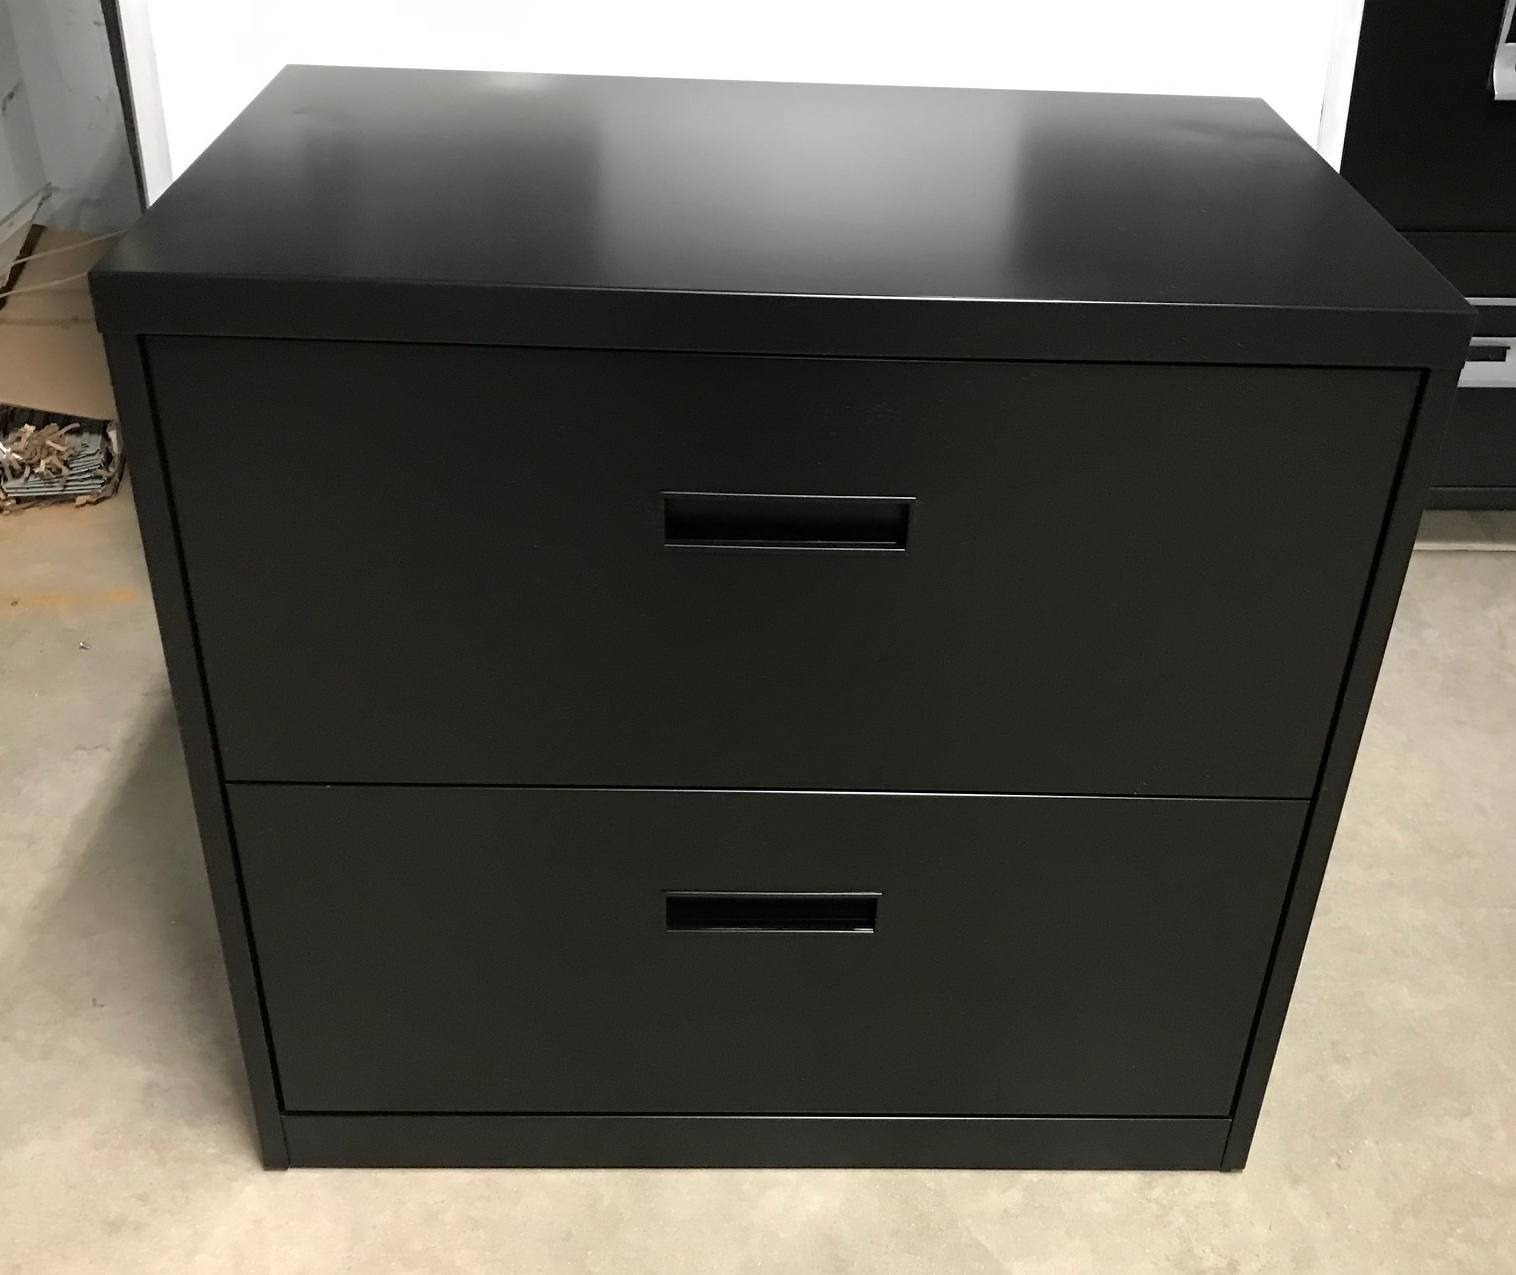 2 Drawer Steelcase Brand 30 Wide Black Lateral File Cabinet Used